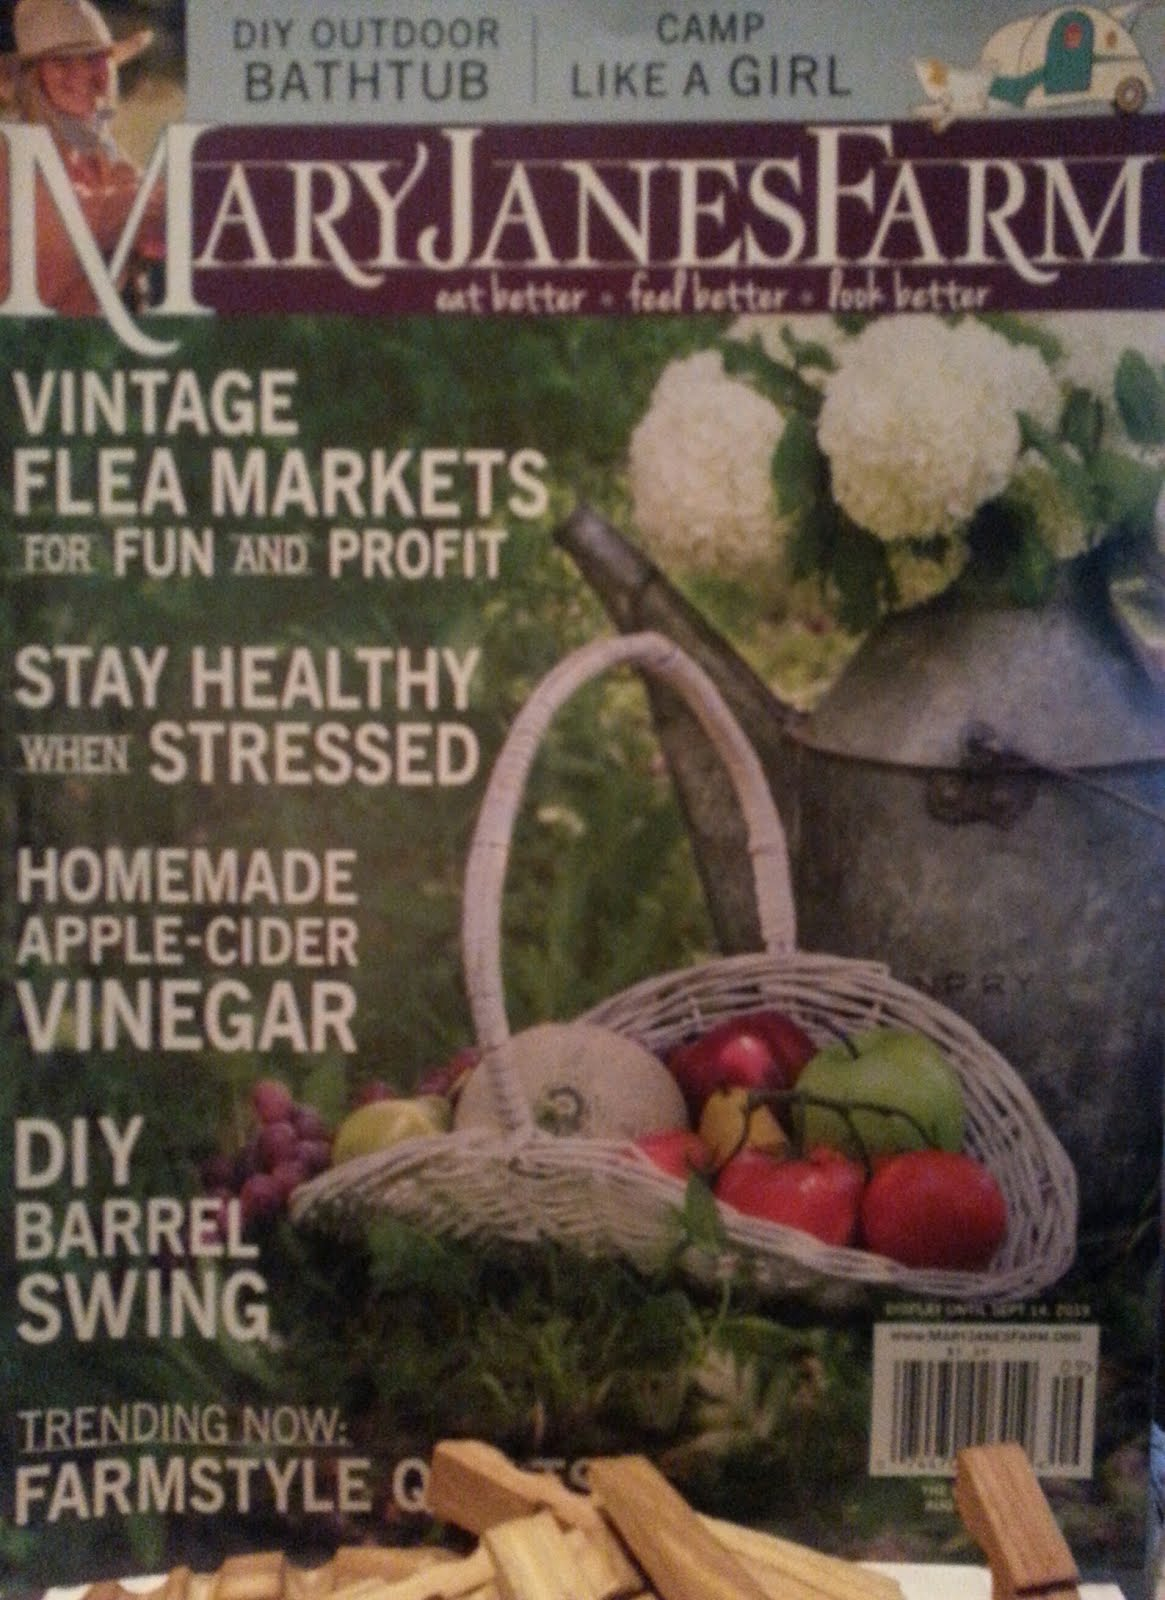 We were written about in the Aug/Sept issue of Mary Jane's Farm Magazine